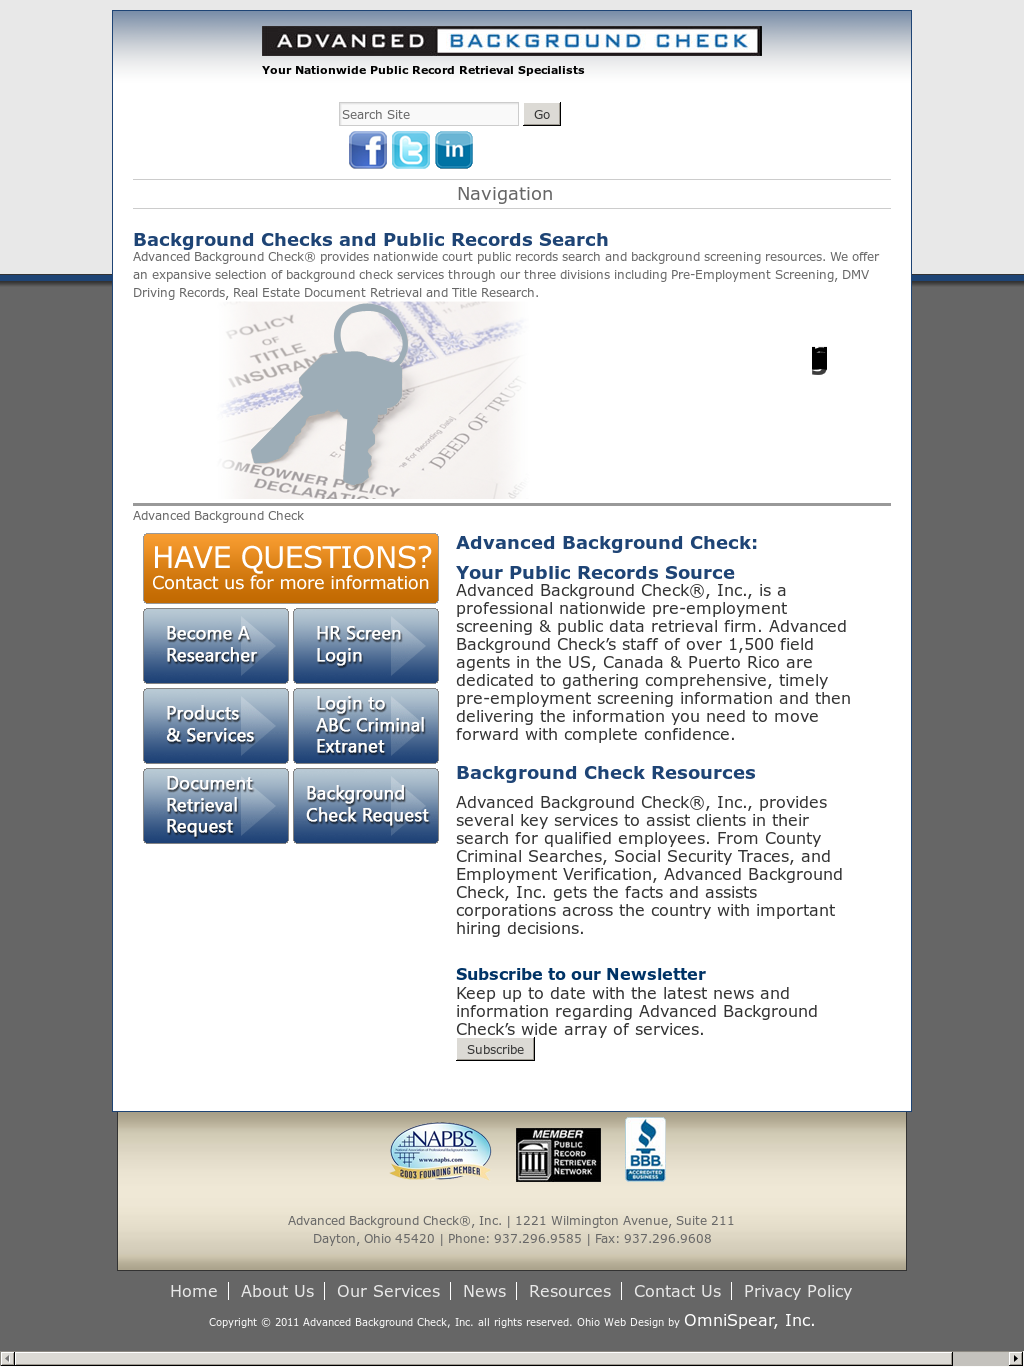 Advanced Background Check Competitors, Revenue and Employees